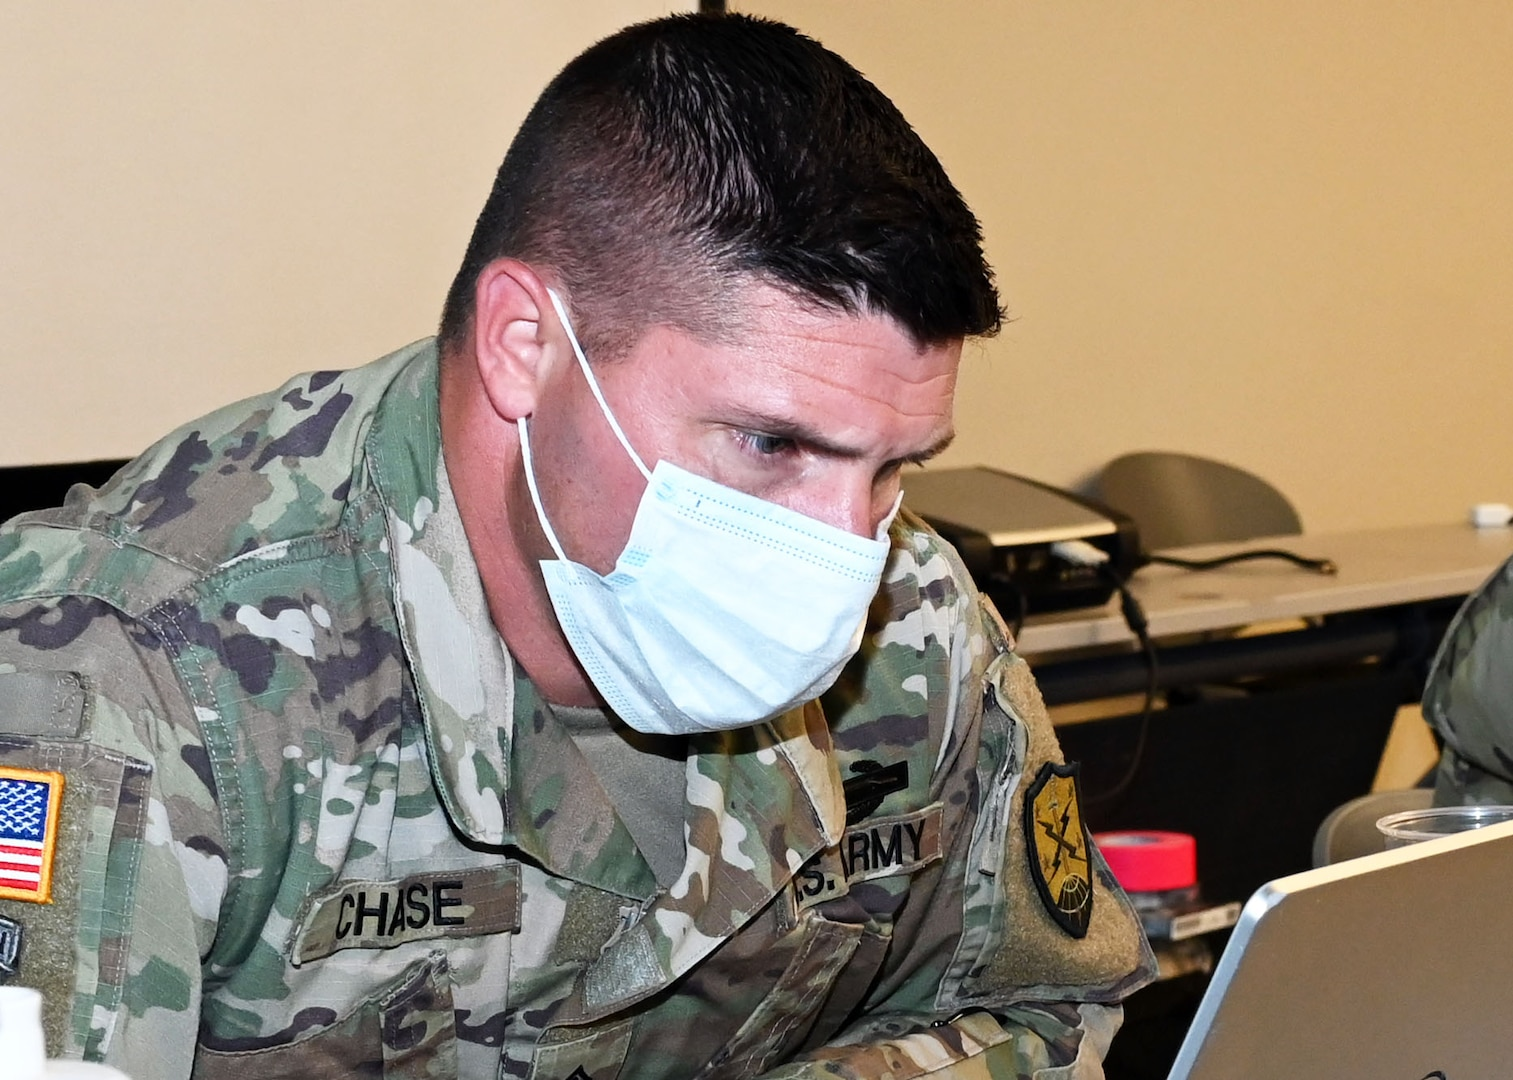 Staff Sgt. Travis Chase, 136th Cyber Security Company, New Hampshire Army National Guard, combats a notional cyberattack made by a foreign government during Cyber Yankee regional training exercise, July 27, 2020, at the Edward Cross Training Center in Pembroke, N.H.